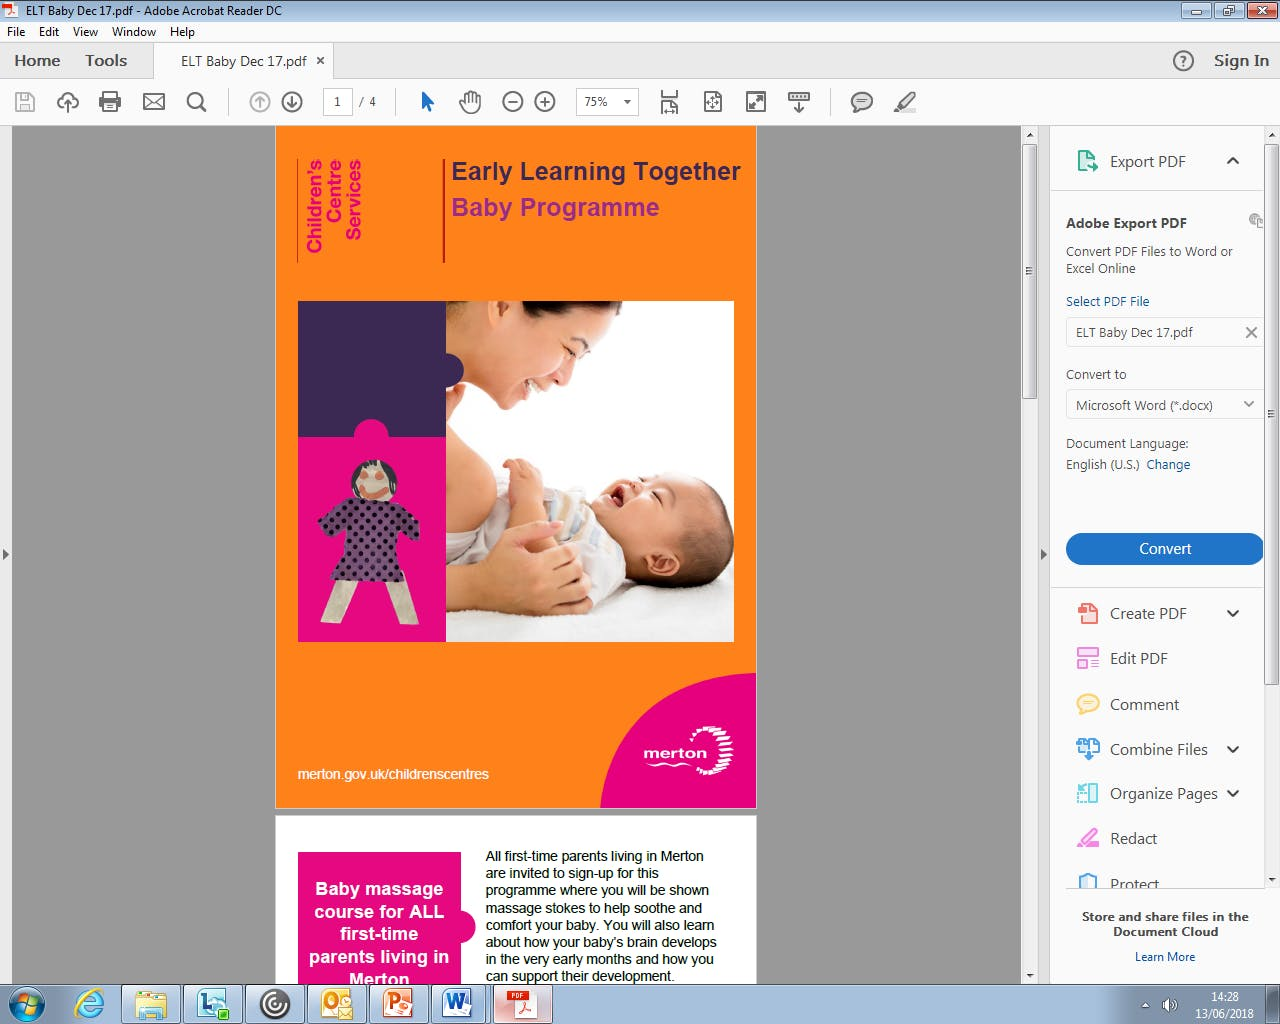 Early Learning Together (ELT) Baby Programme 0-7 months